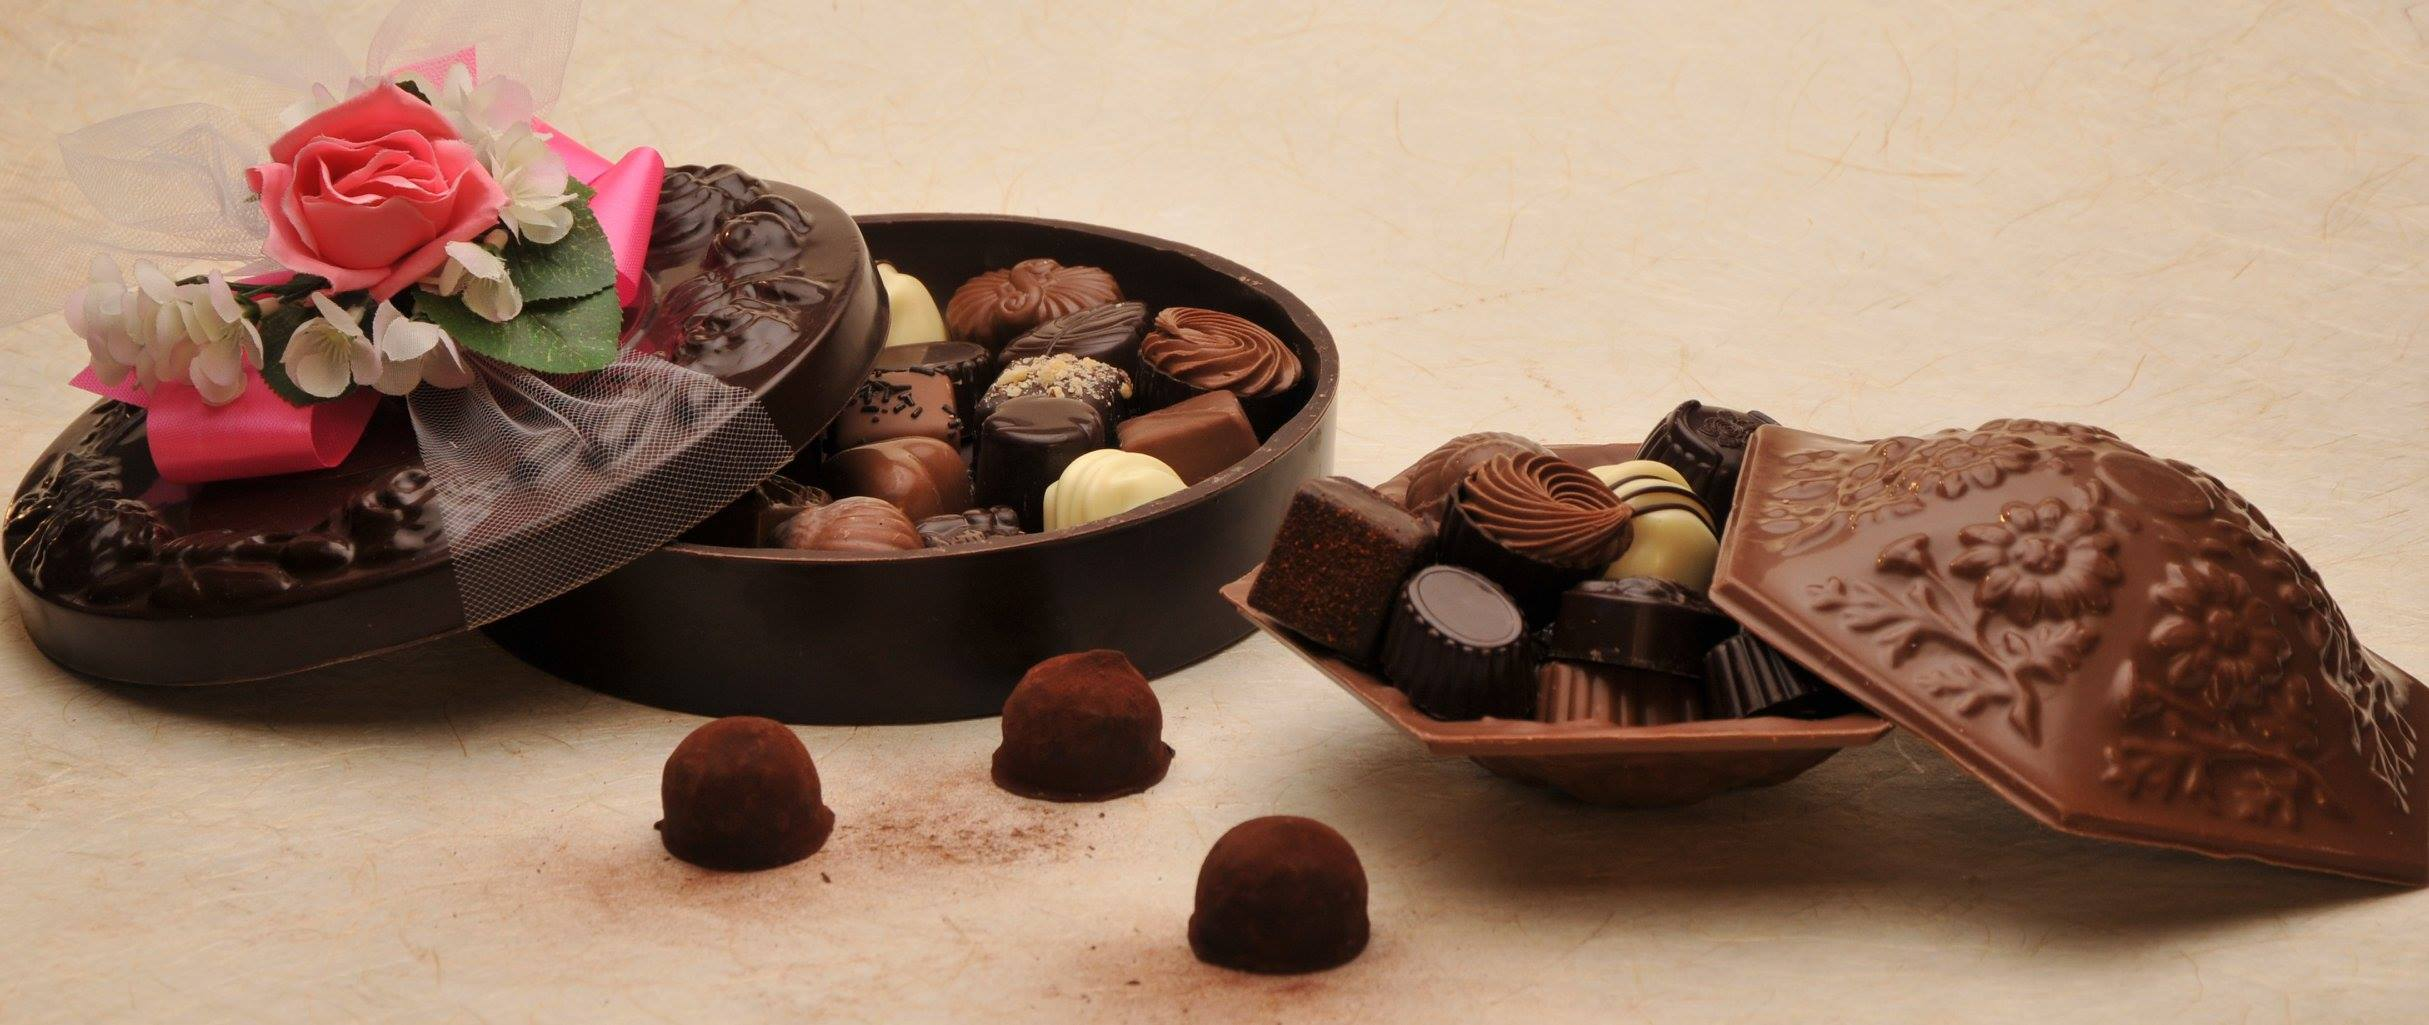 Chocolate Candy Dish Assortment